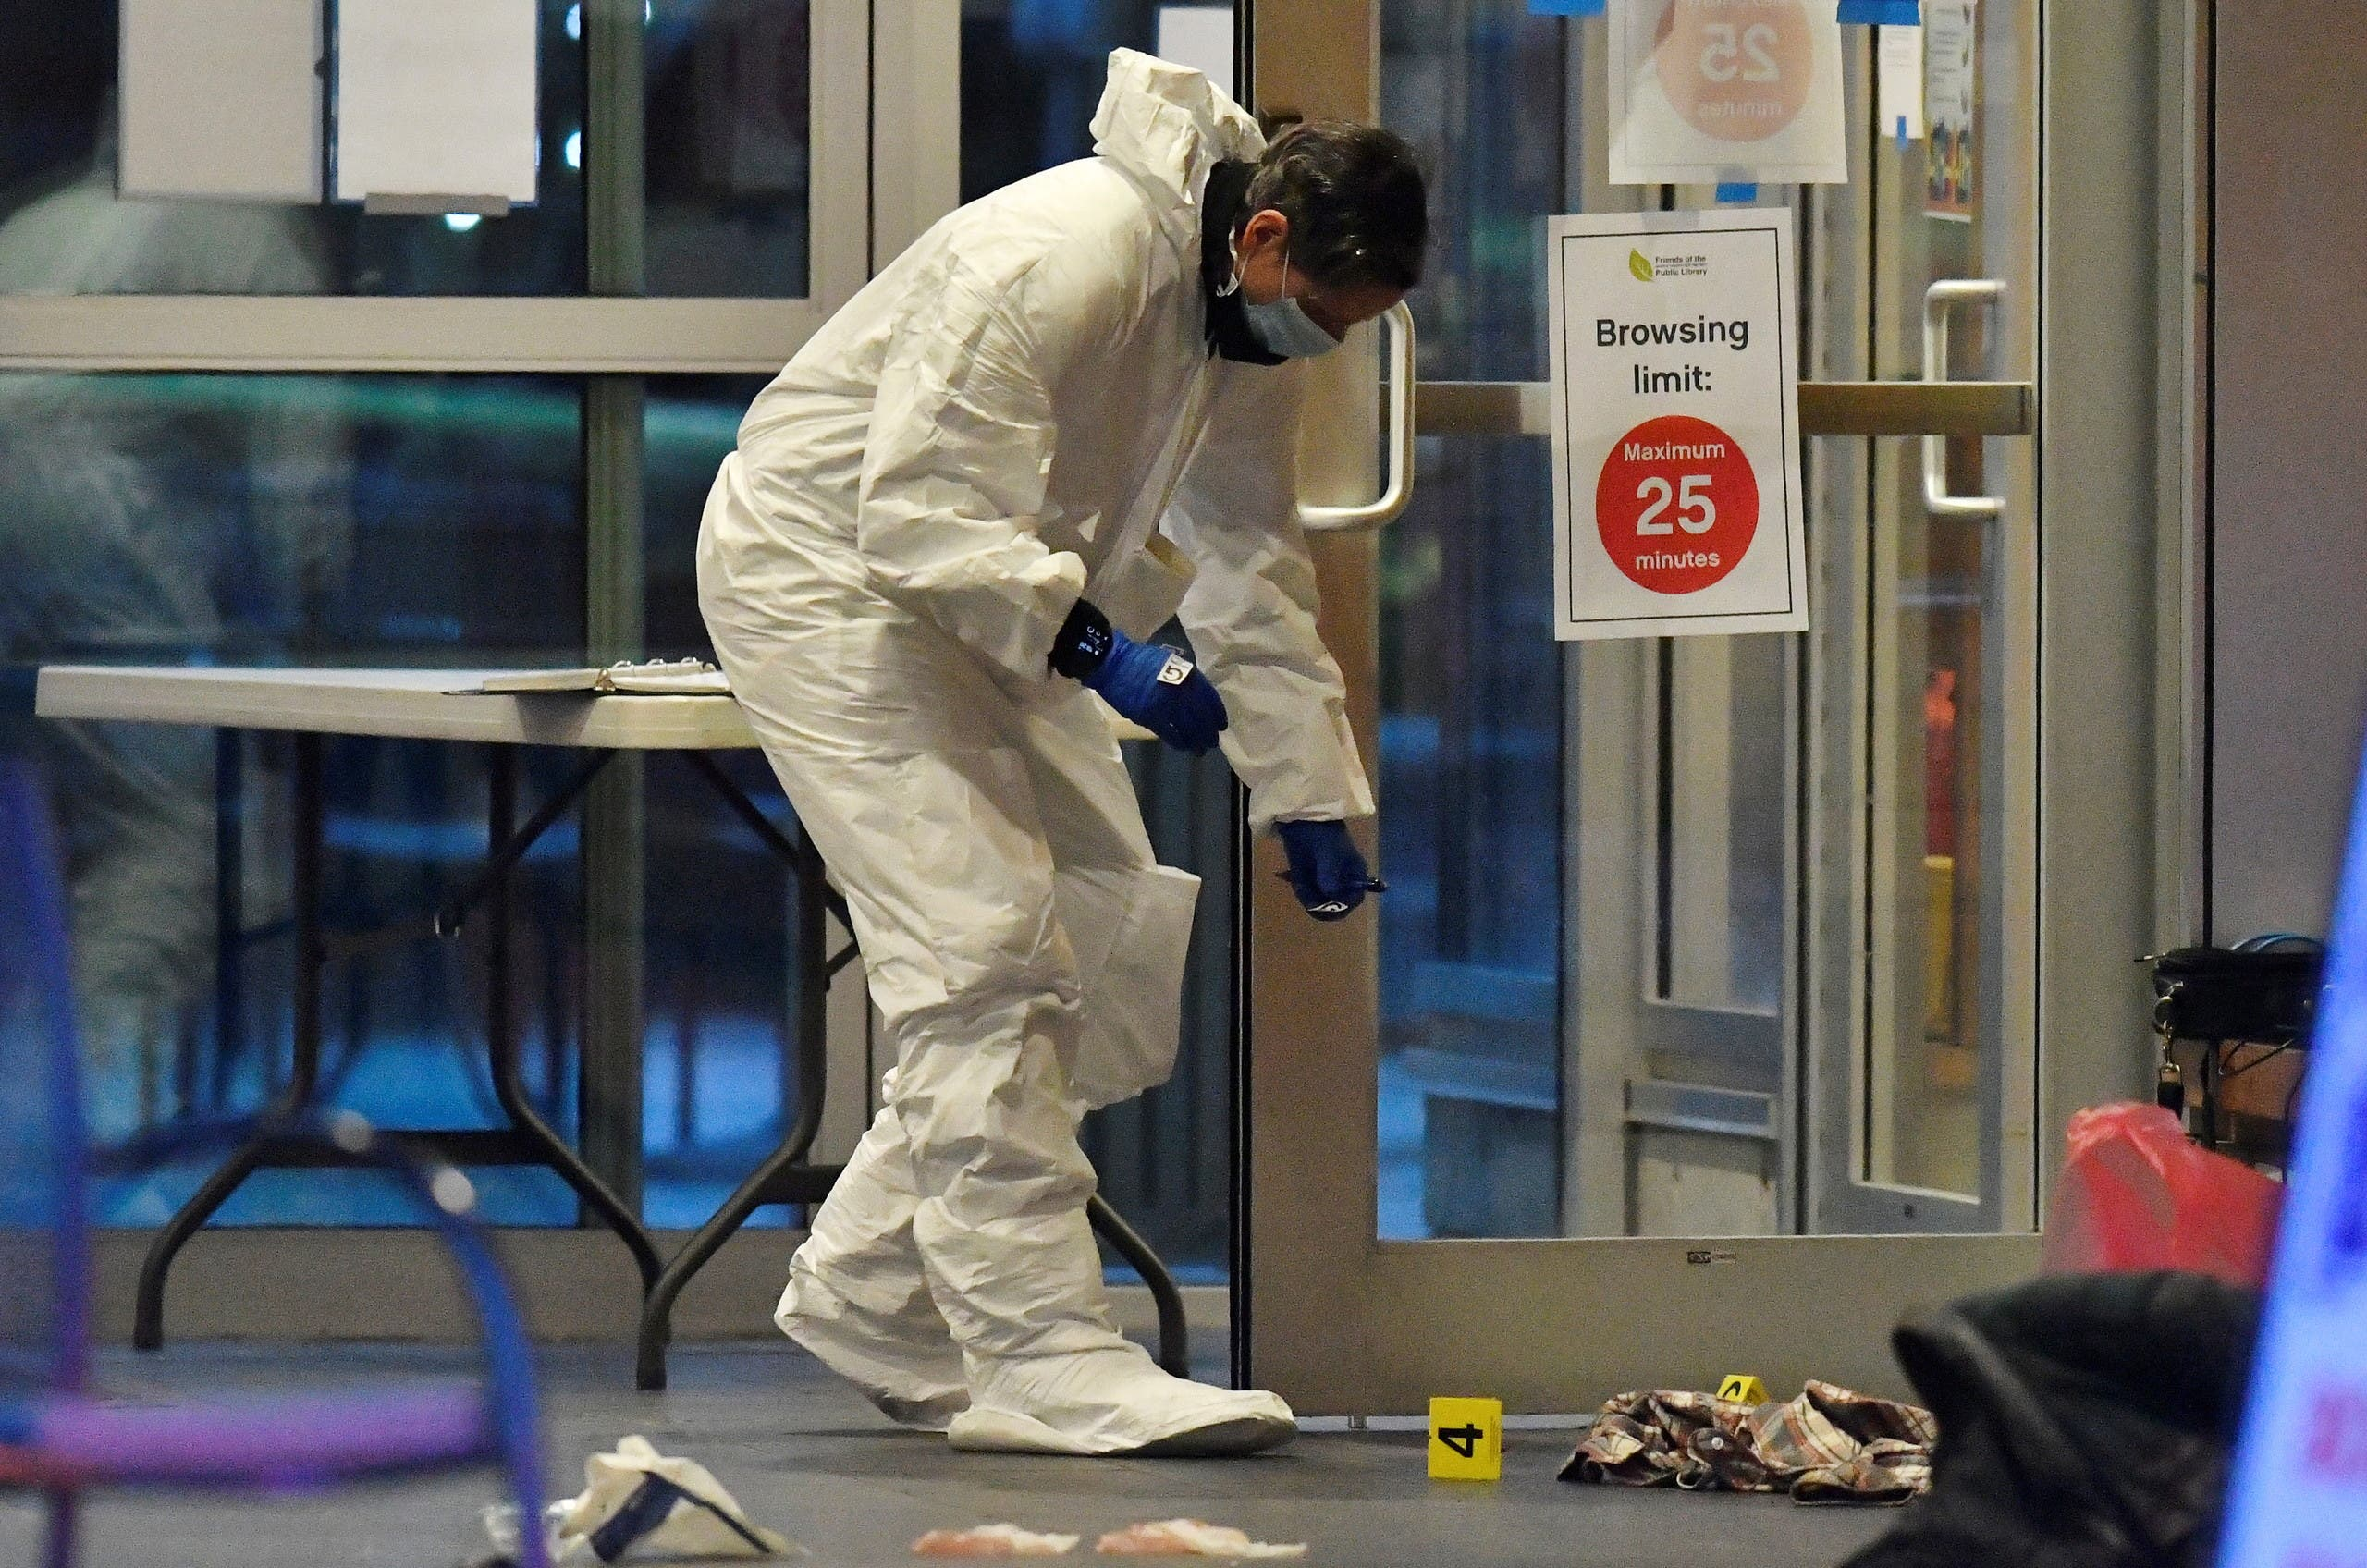 A first responder works at a crime scene where police say multiple people were stabbed by a suspect at a Vancouver Library in Canada. (Reuters)